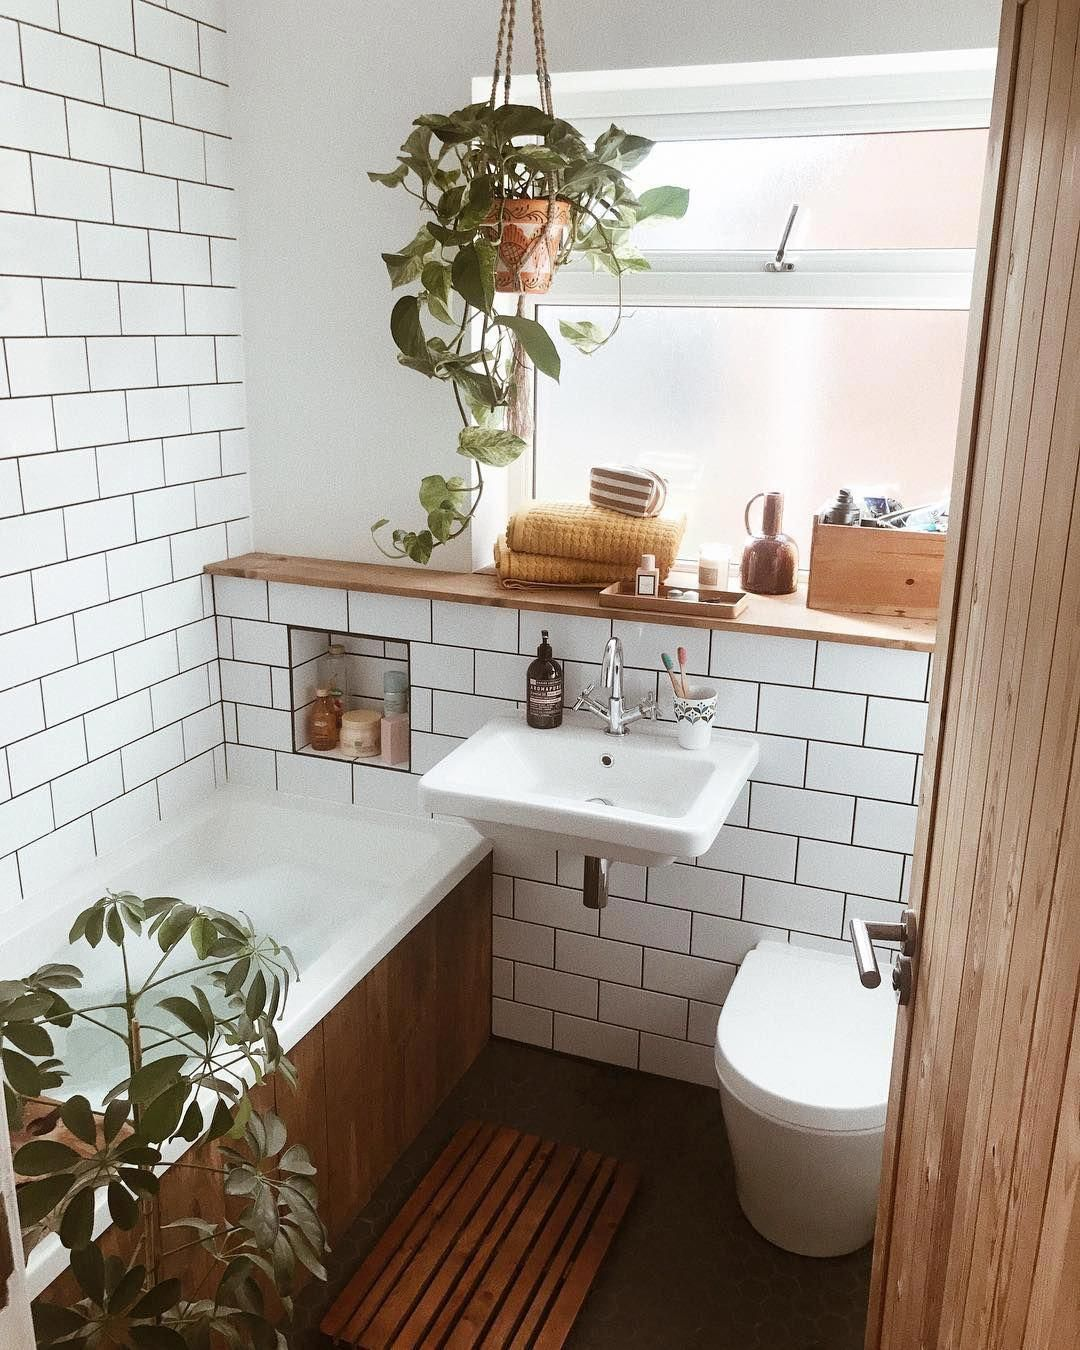 How To Remove The Smell Of Frying Wooden Bath Panel Wooden Bath Bathrooms Remodel